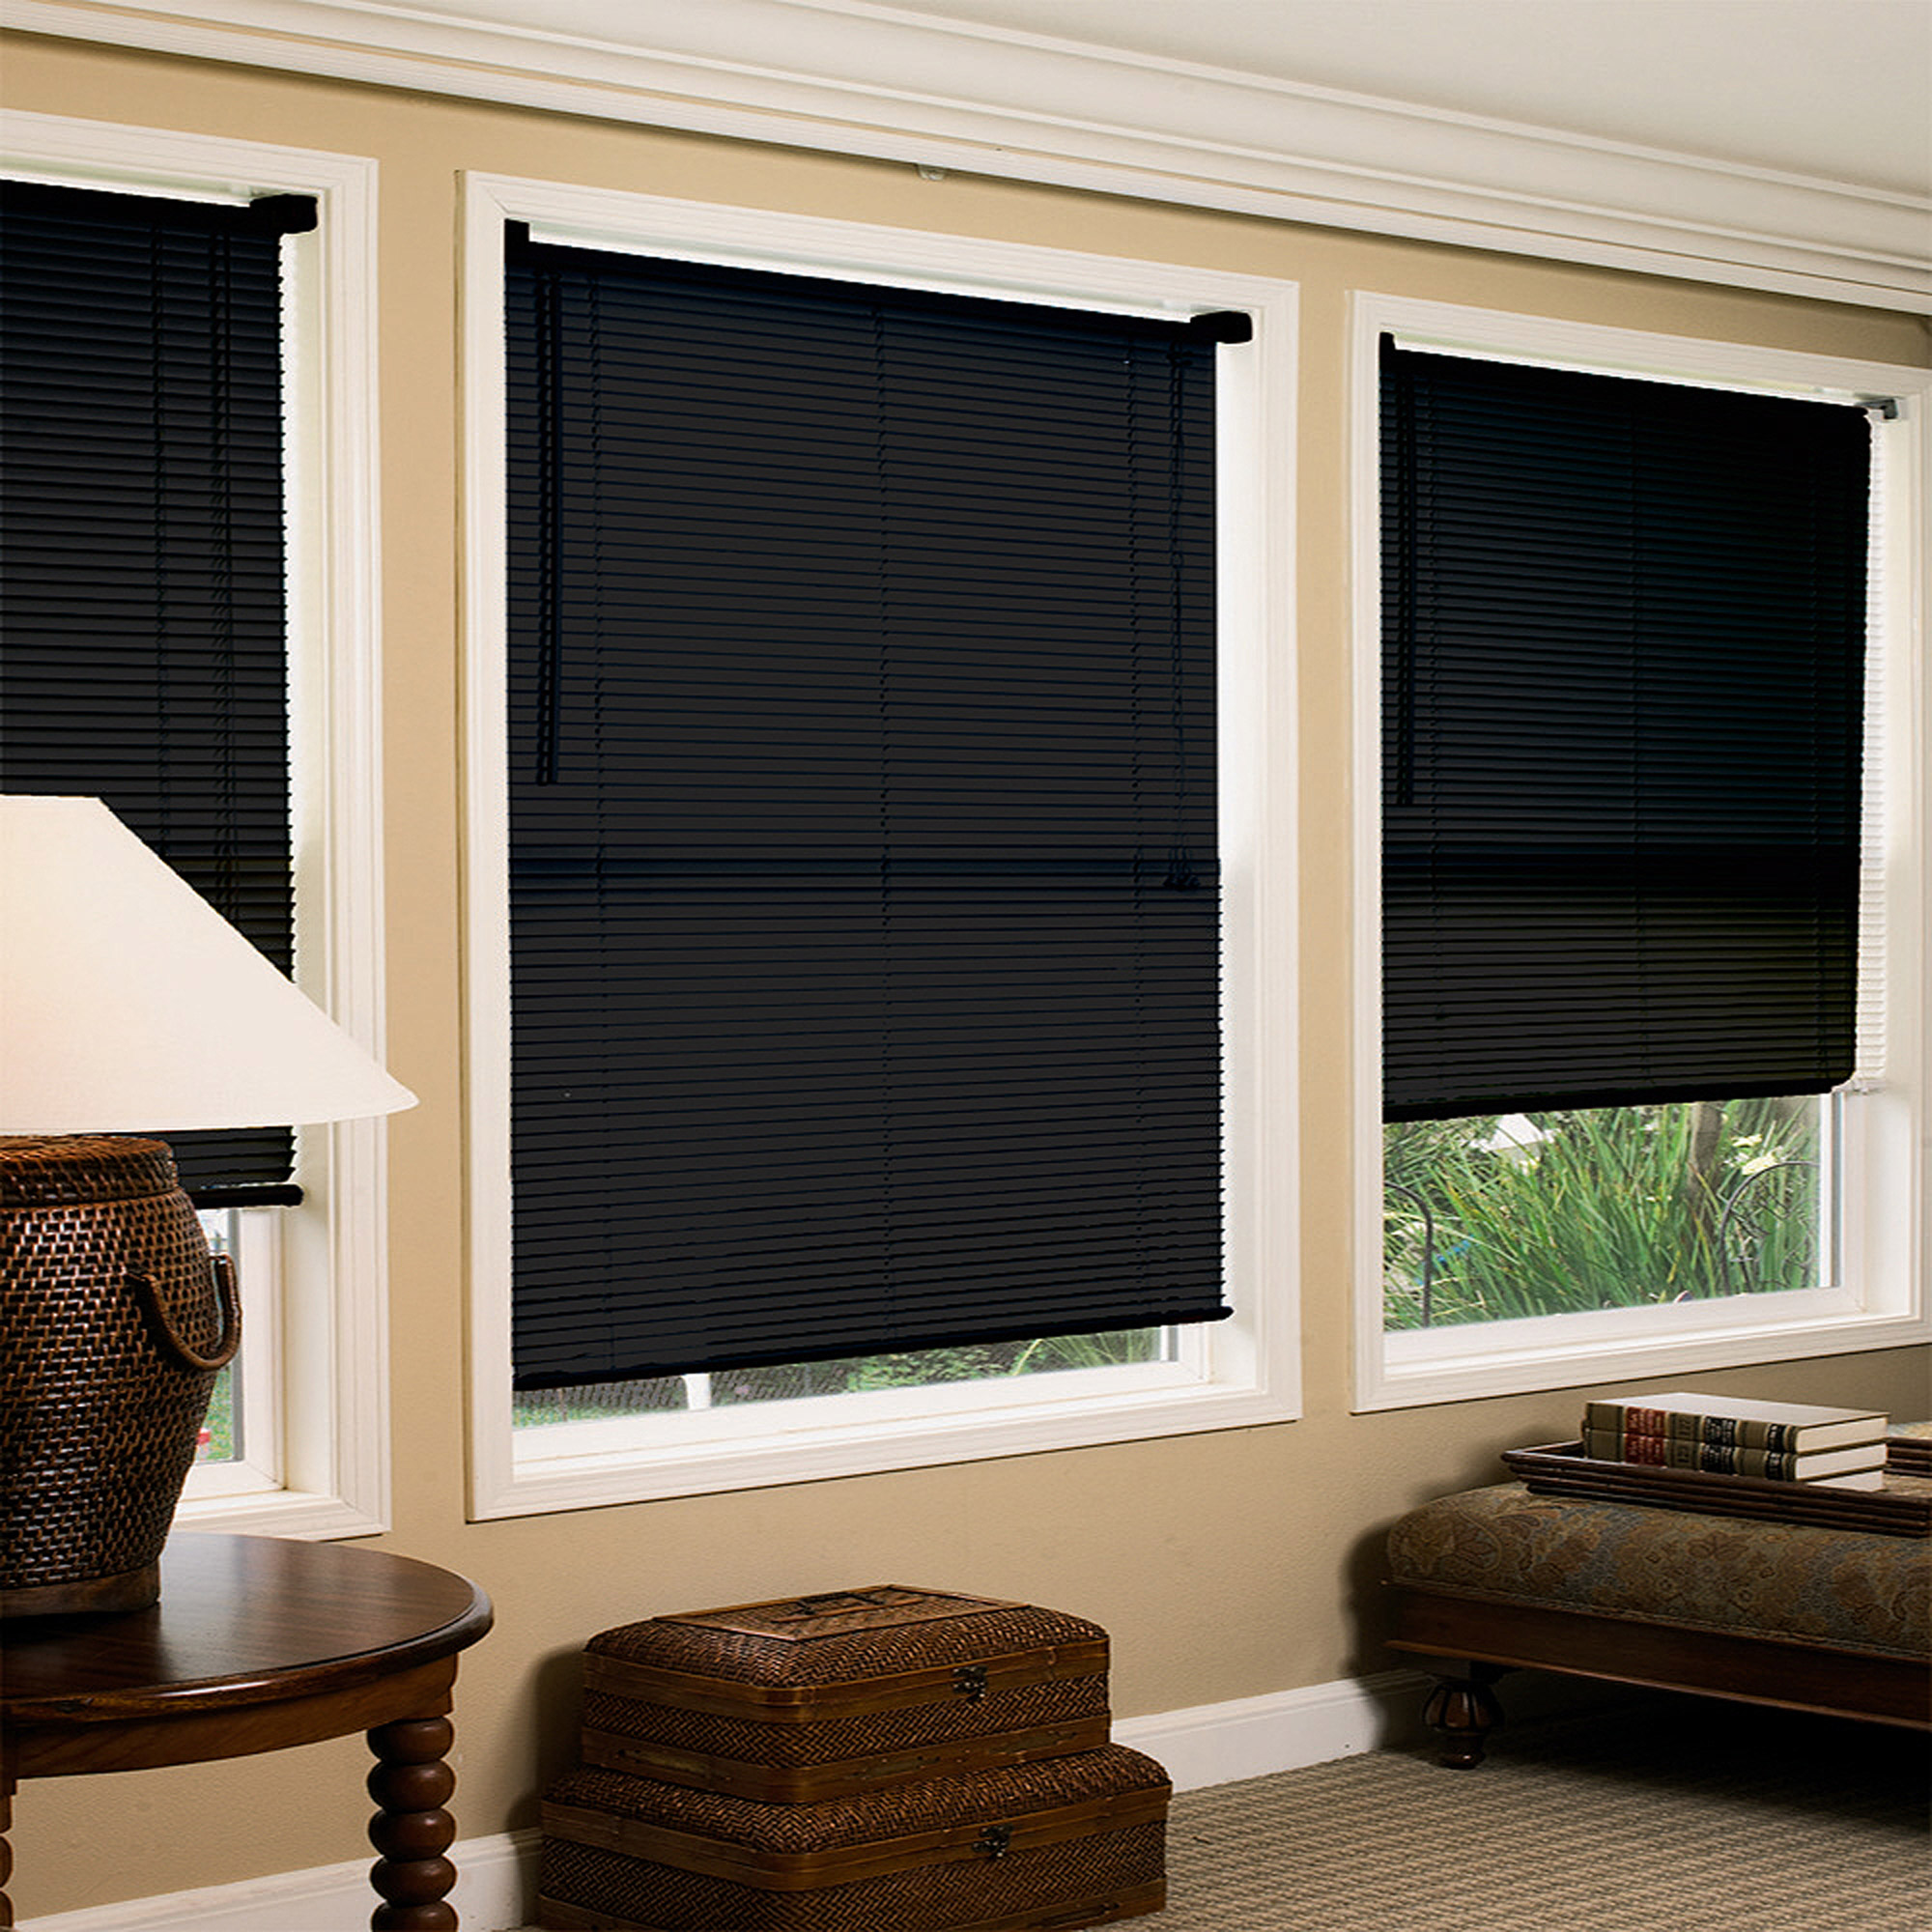 Radiance Mini Blinds